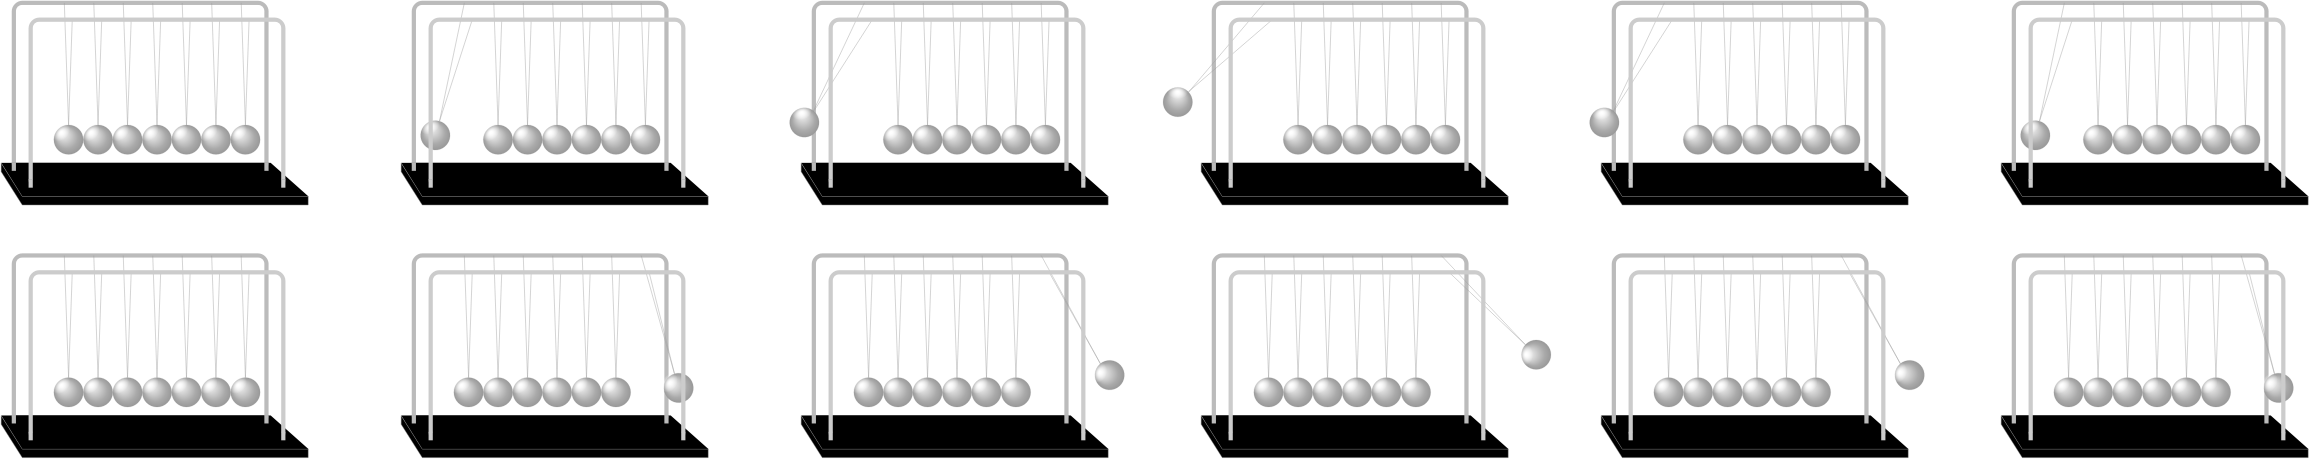 Newton's Cradle Sprite Sheet by JayNick